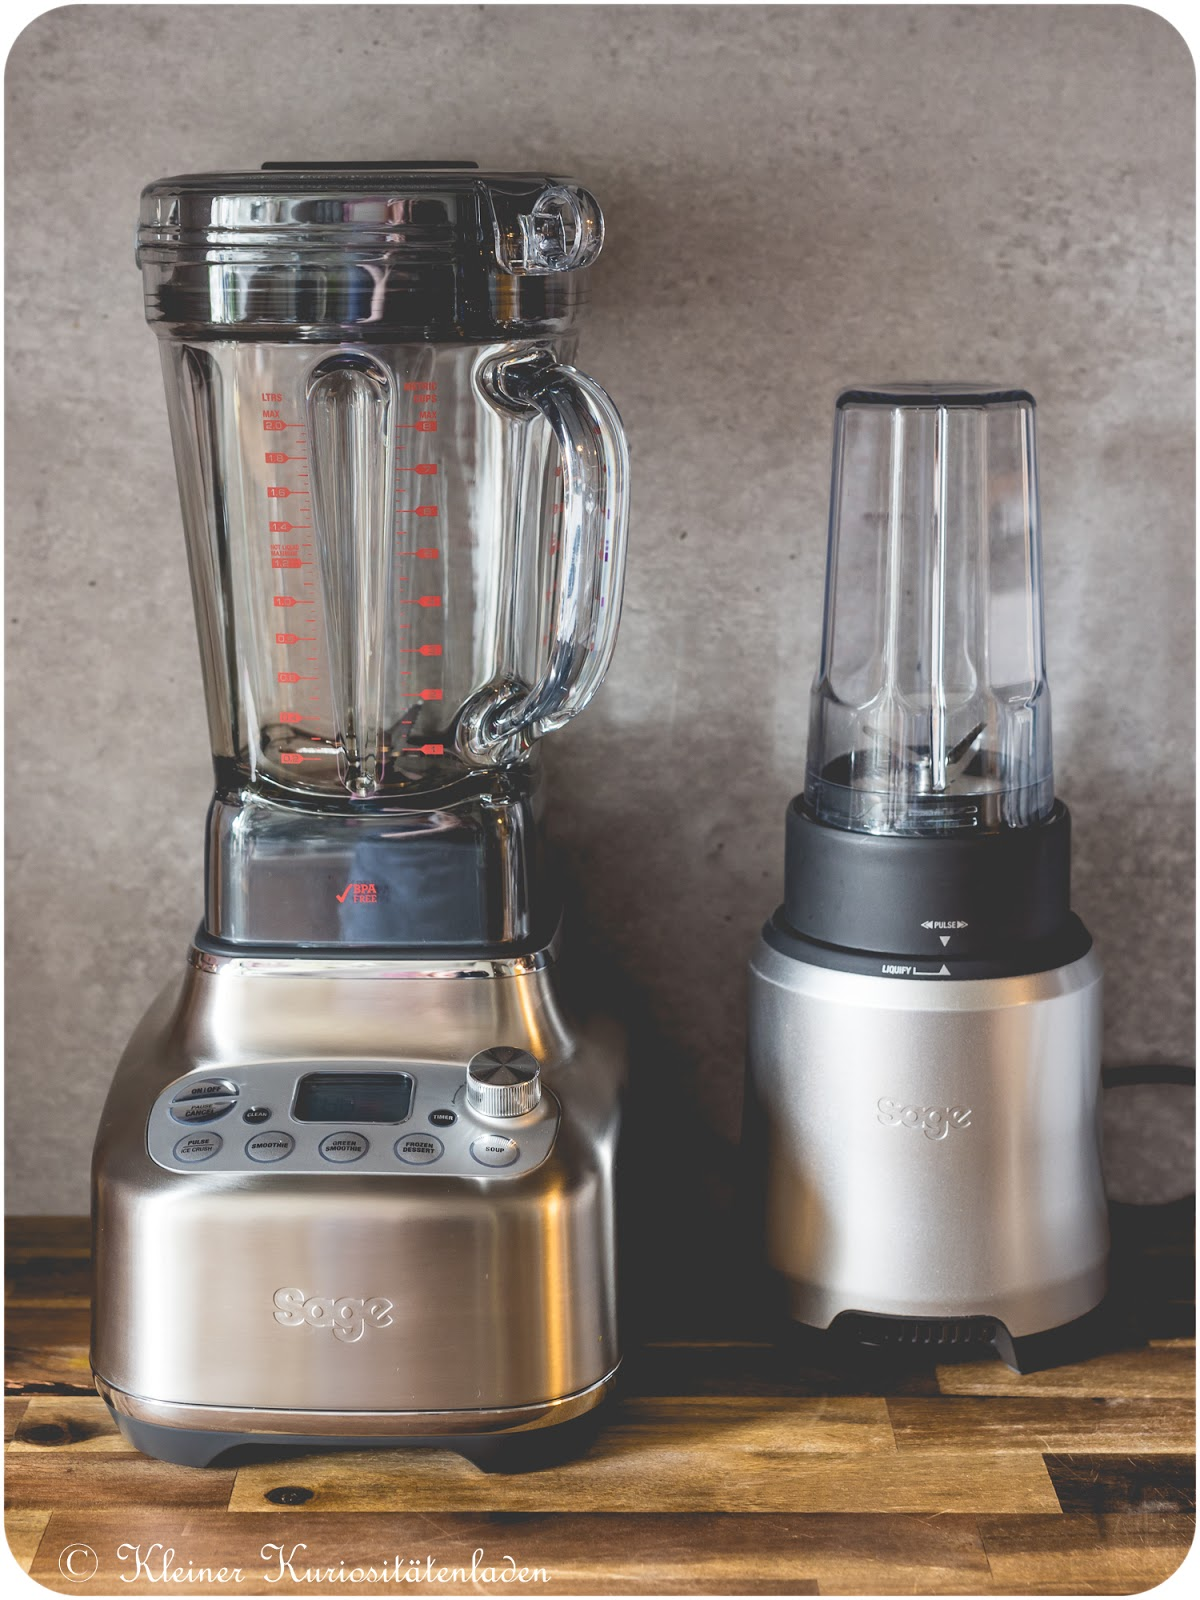 Links: The Super Q von Sage Appliances | Rechts: The Boss To Go von Sage Appliances